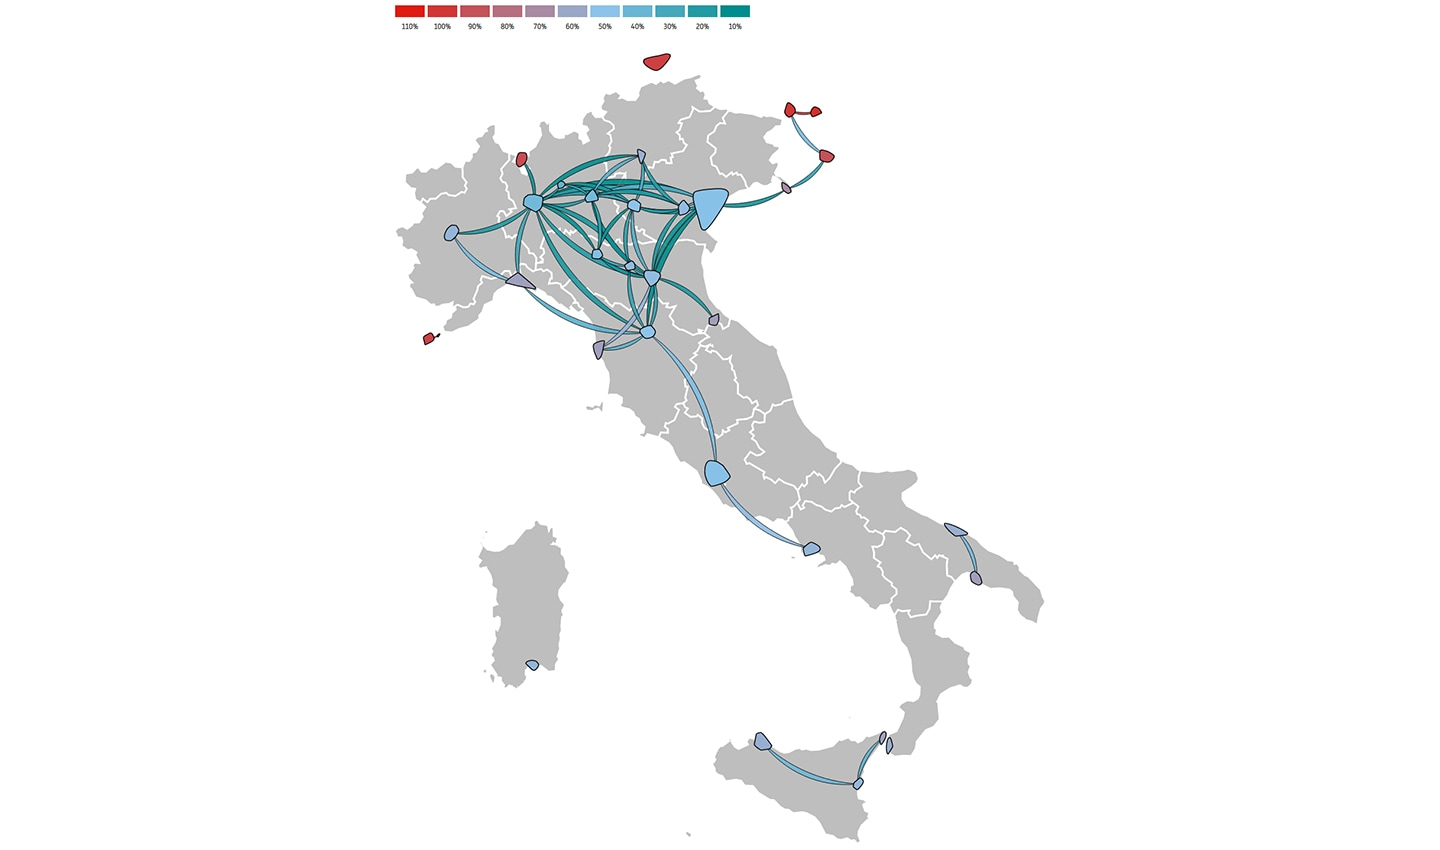 Remaining mobility in Italy between March 7, 2020 and March 13, 2020 as a percentage of January traffic.